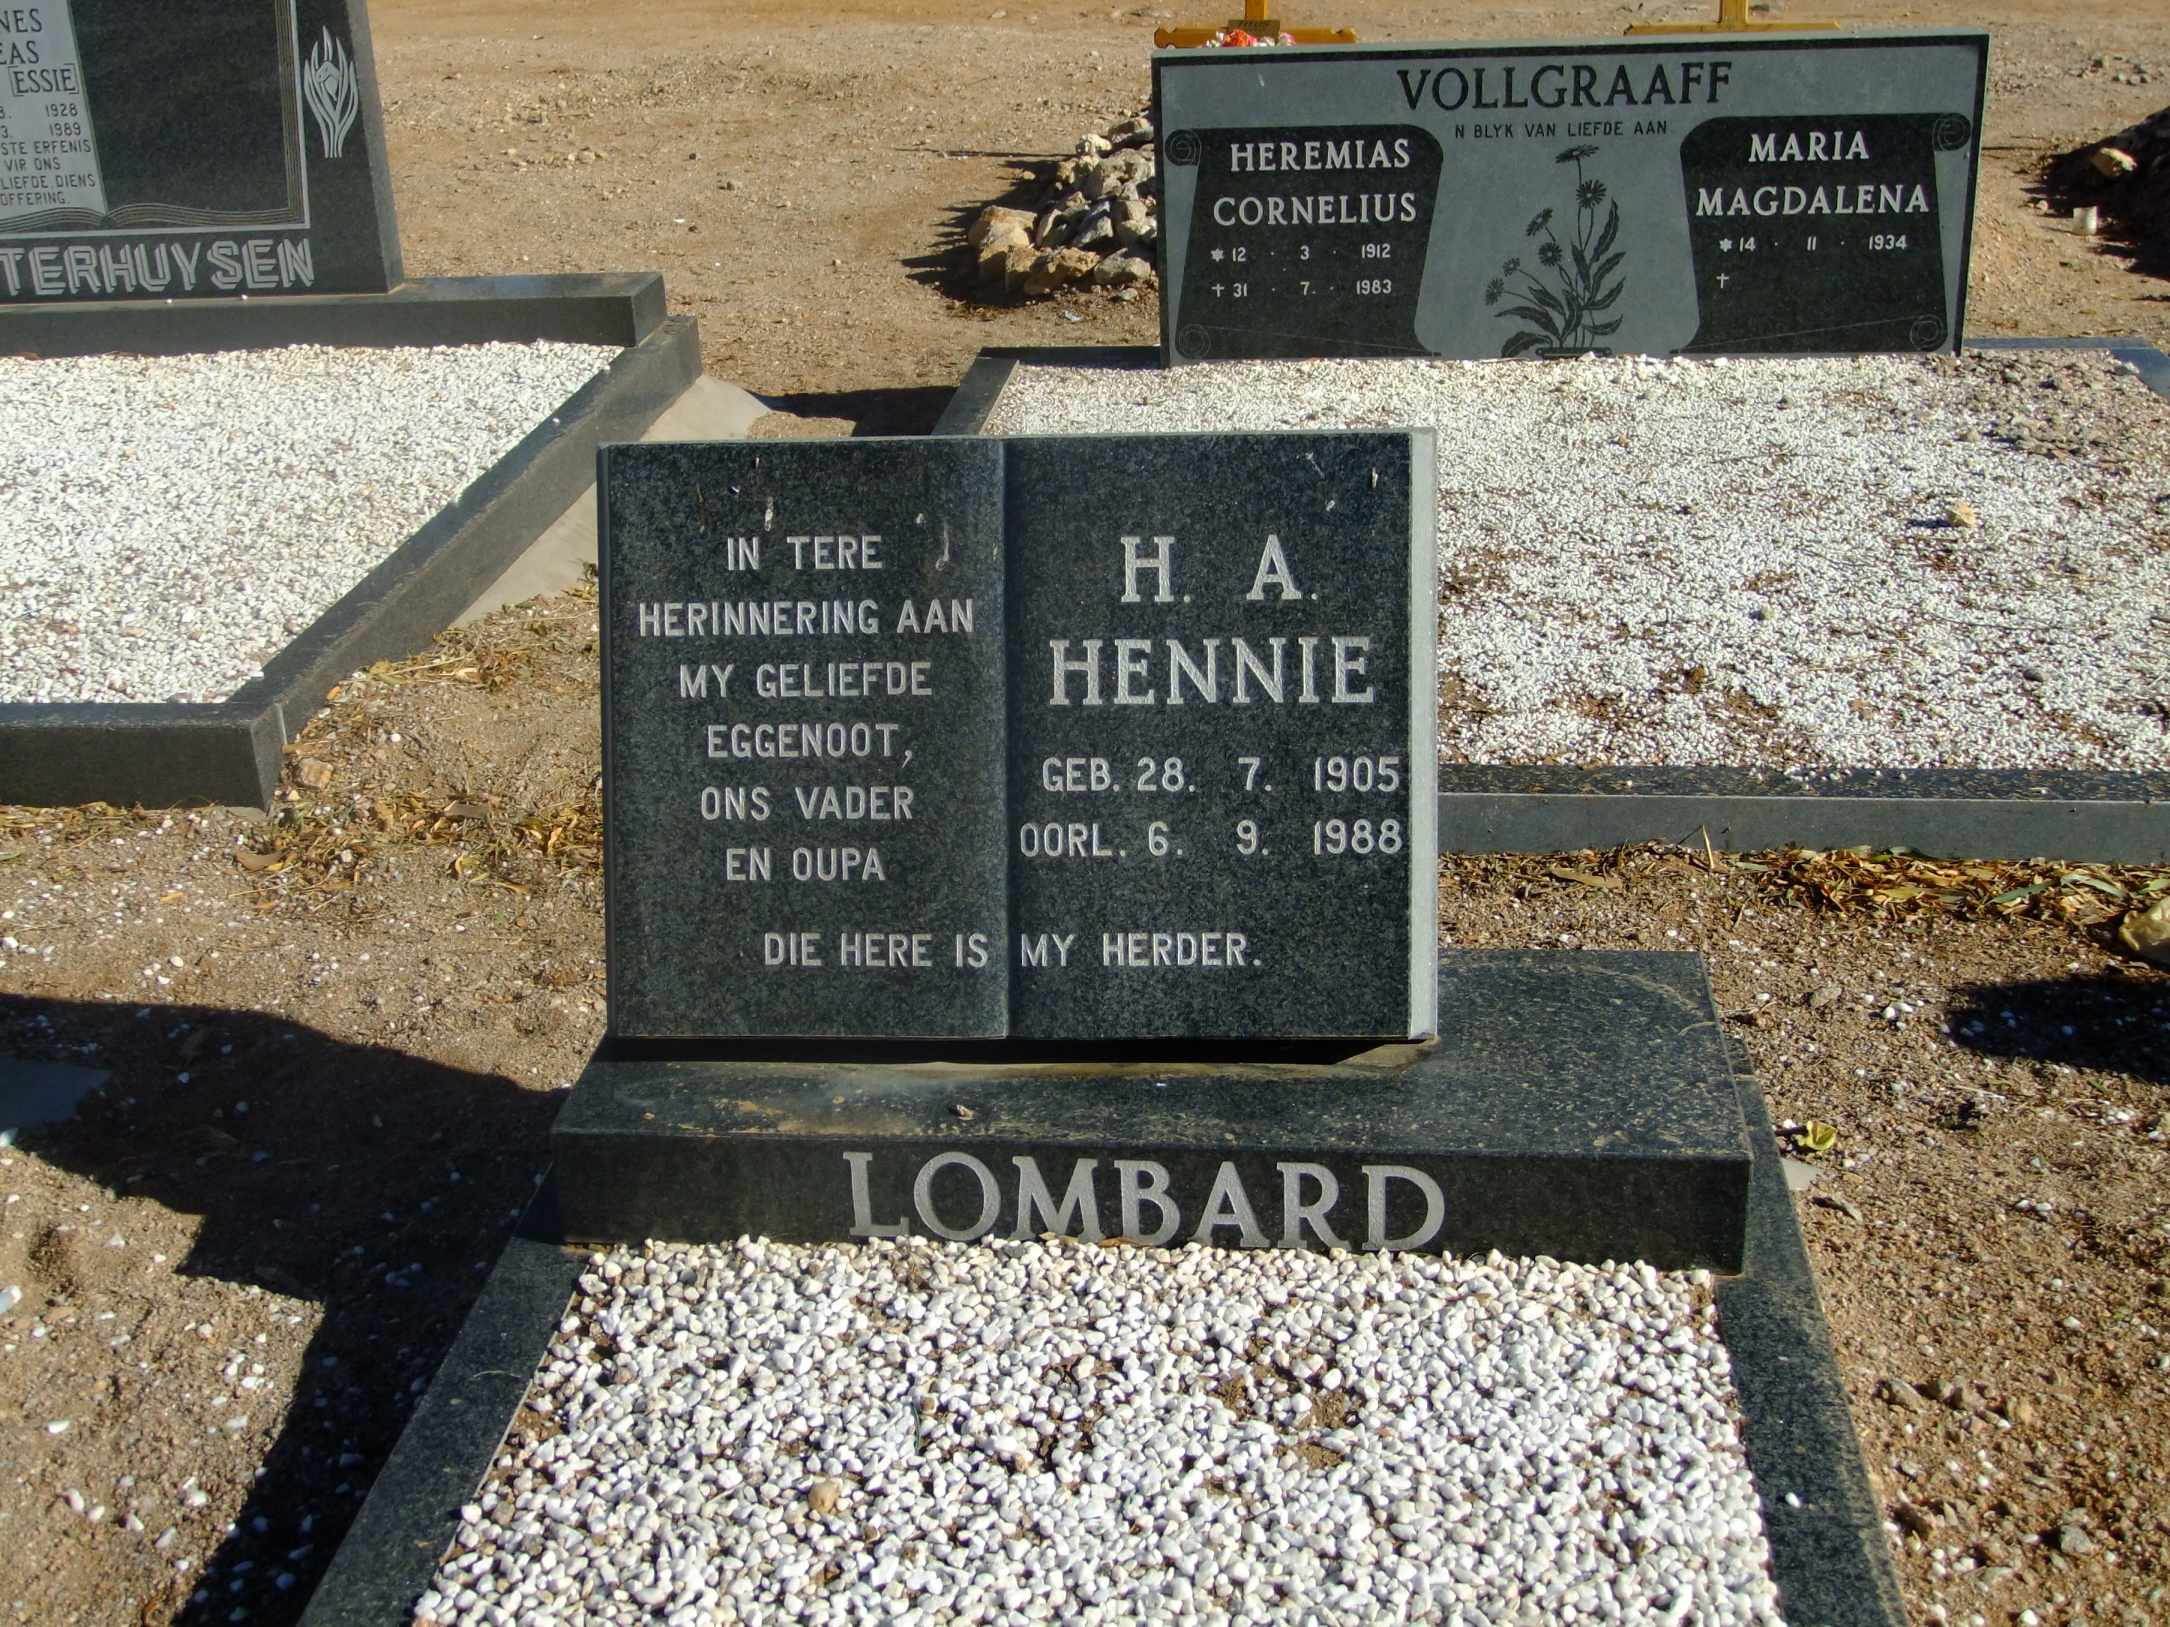 Lombard, Hennie born 28 July 1905 died 06 September 1988